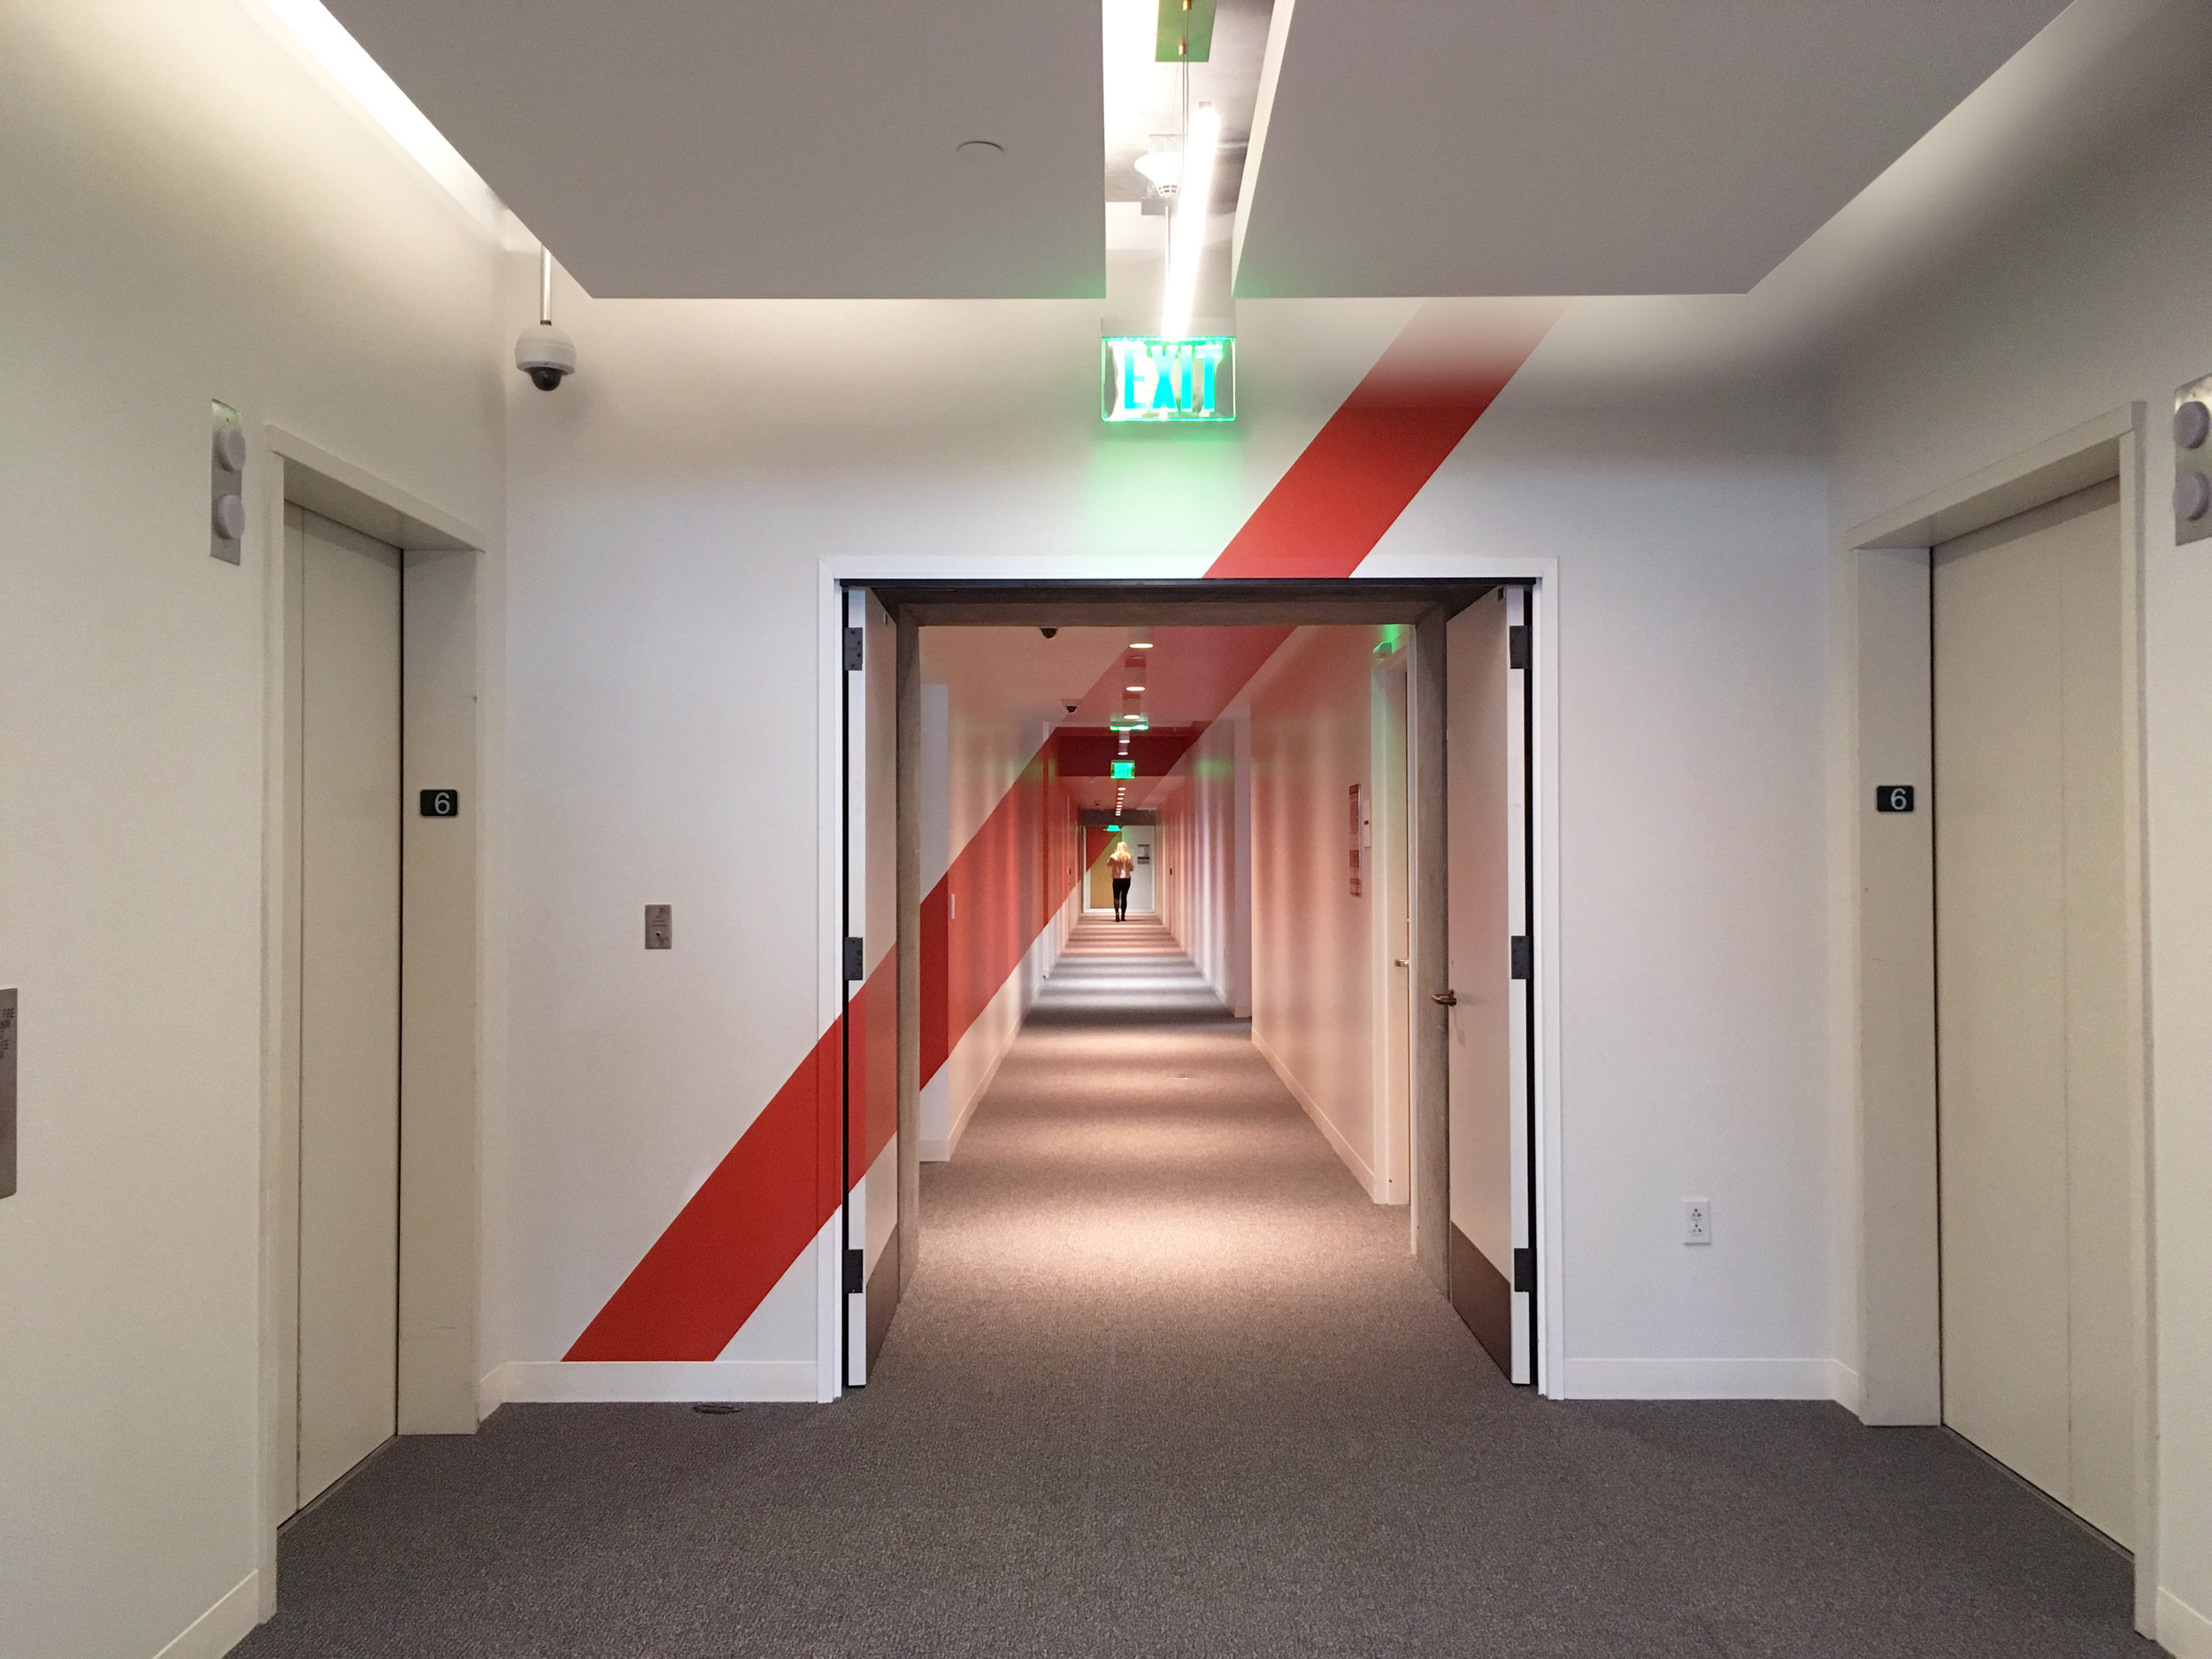 Office-commercial-mural-san-francisco-brex-wall-and-wall-mural-company_002.jpg